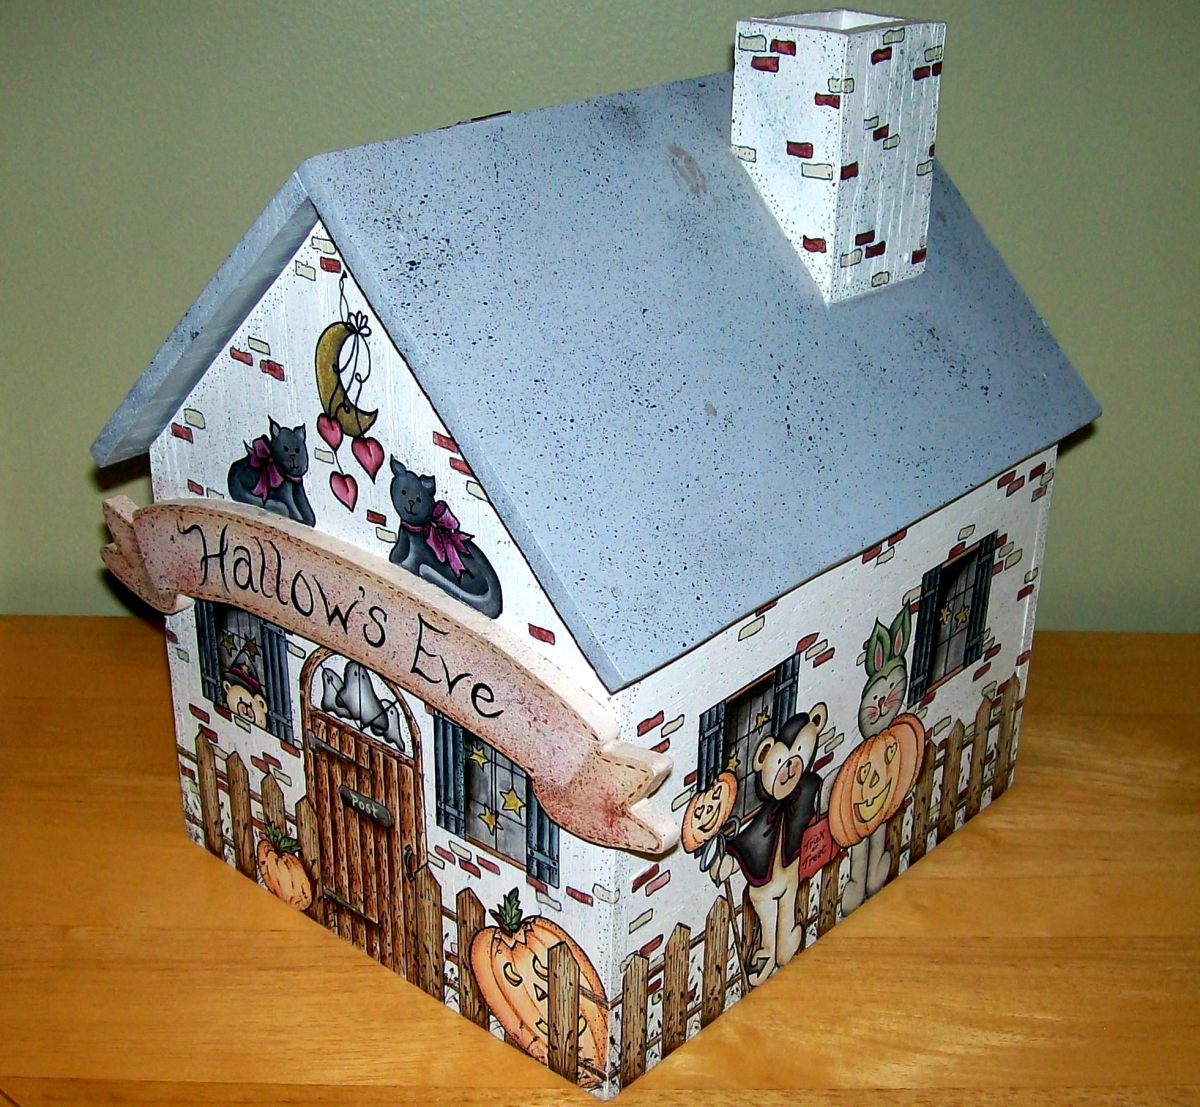 Storage box for Halloween candy painted by Patty Sypek/design by Kathi Walters